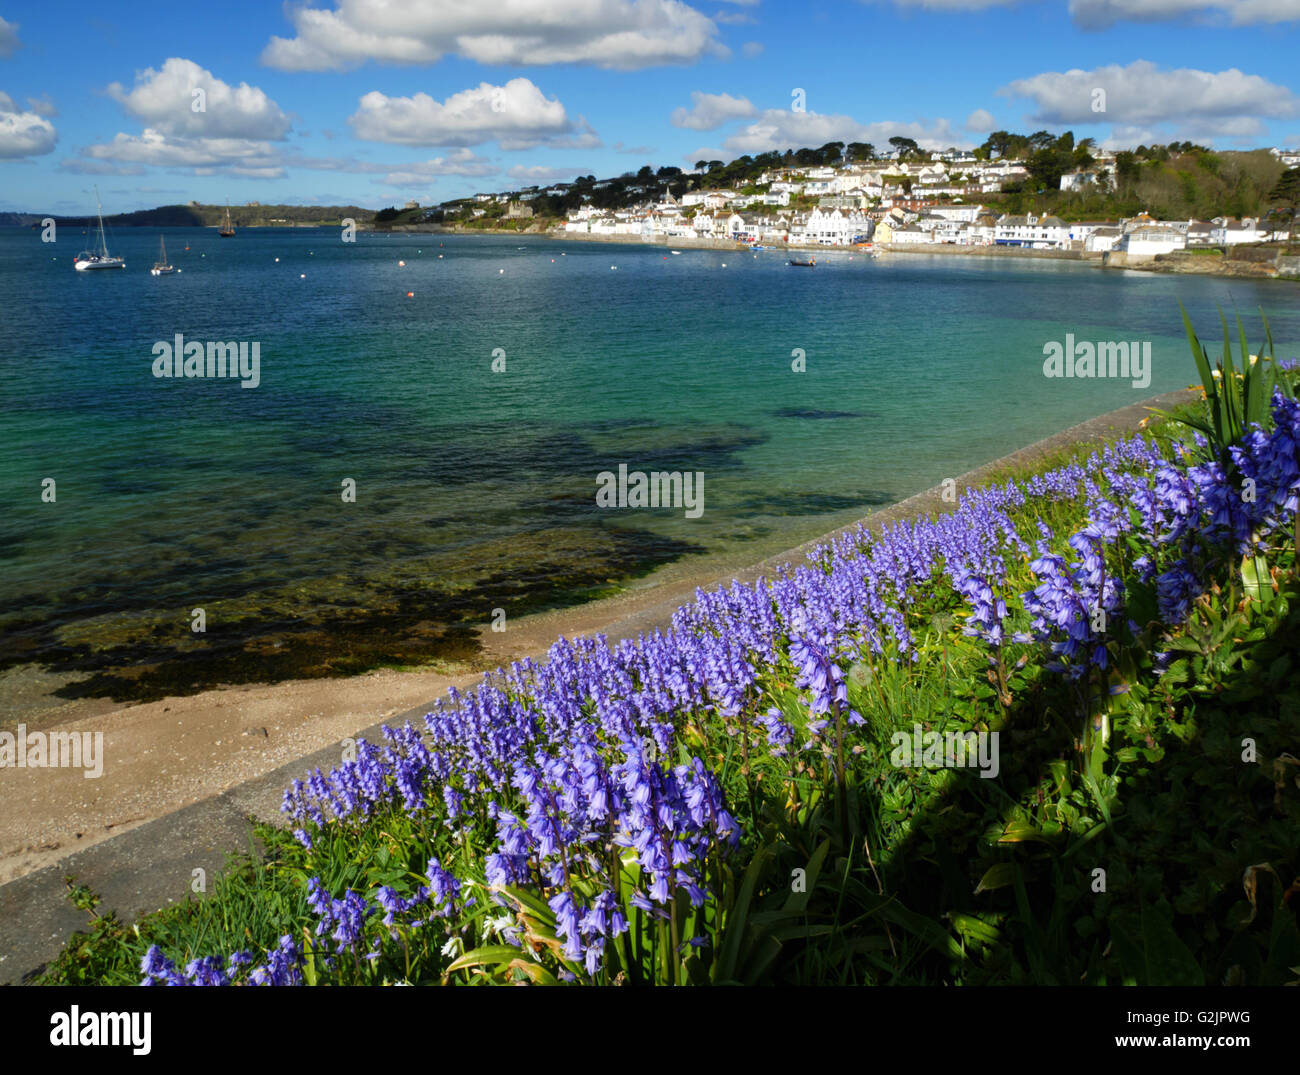 Bluebells grow beside the sea at St Mawes, Cornwall. - Stock Image